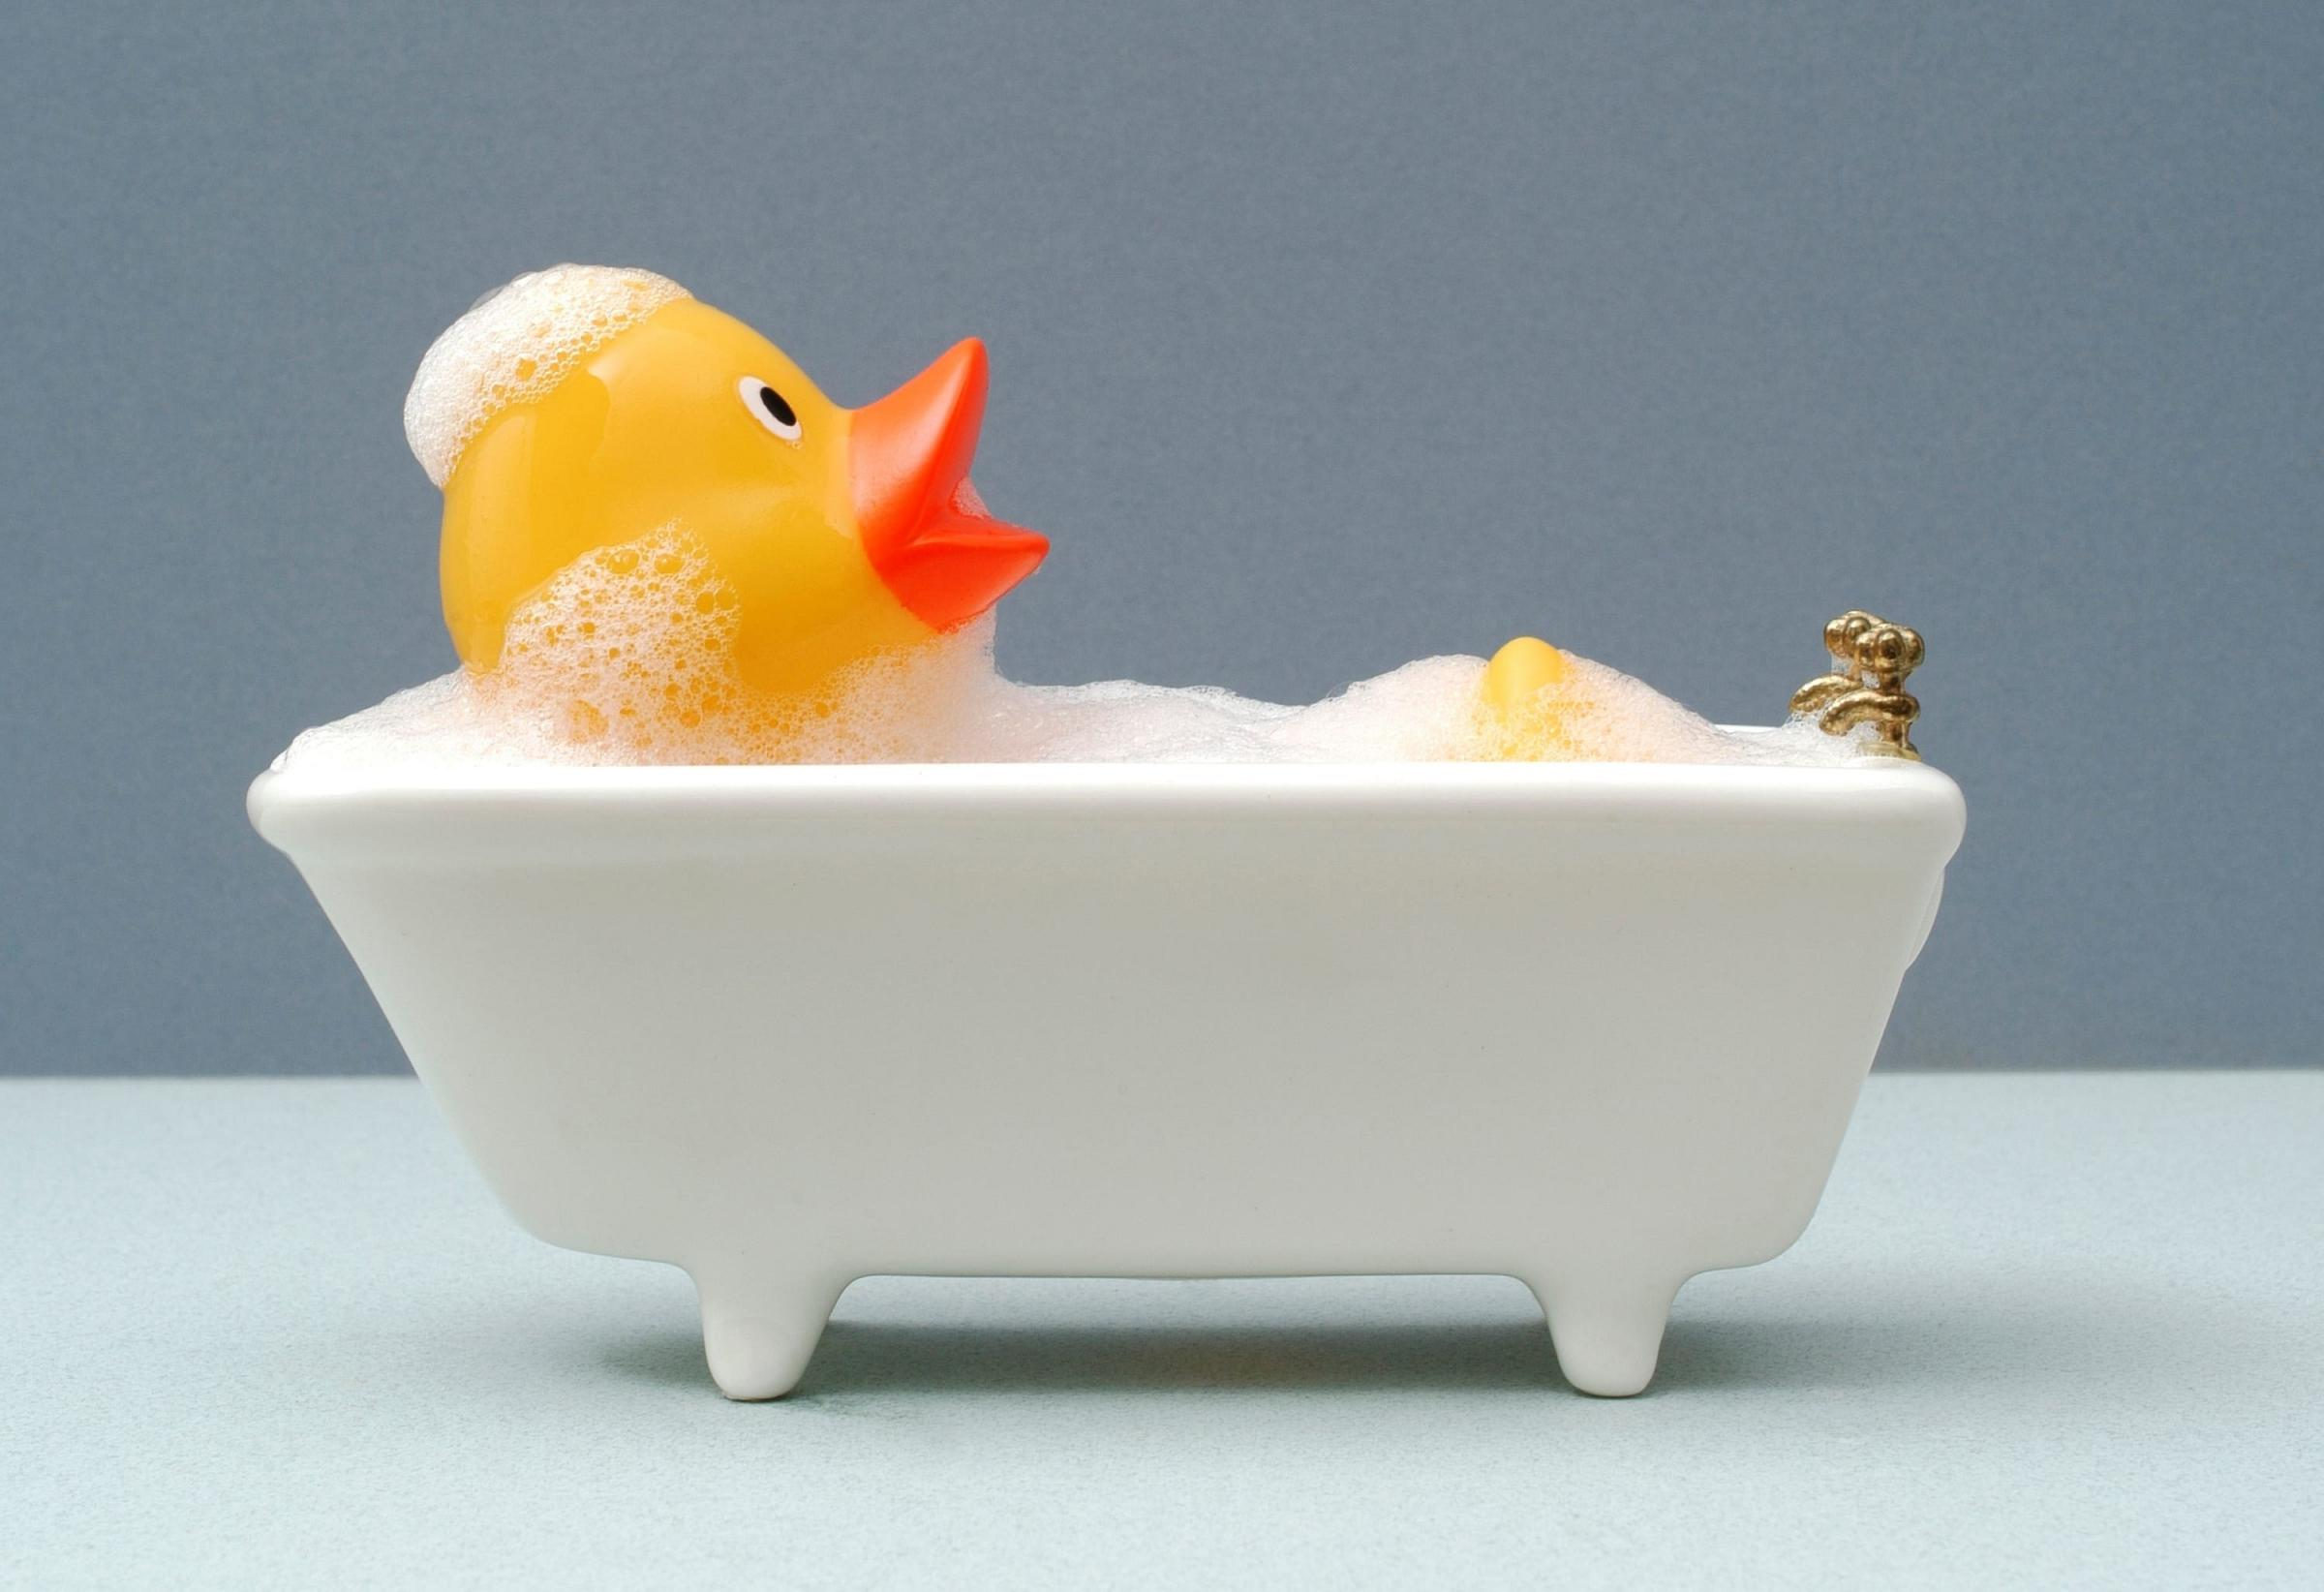 Duck in bath